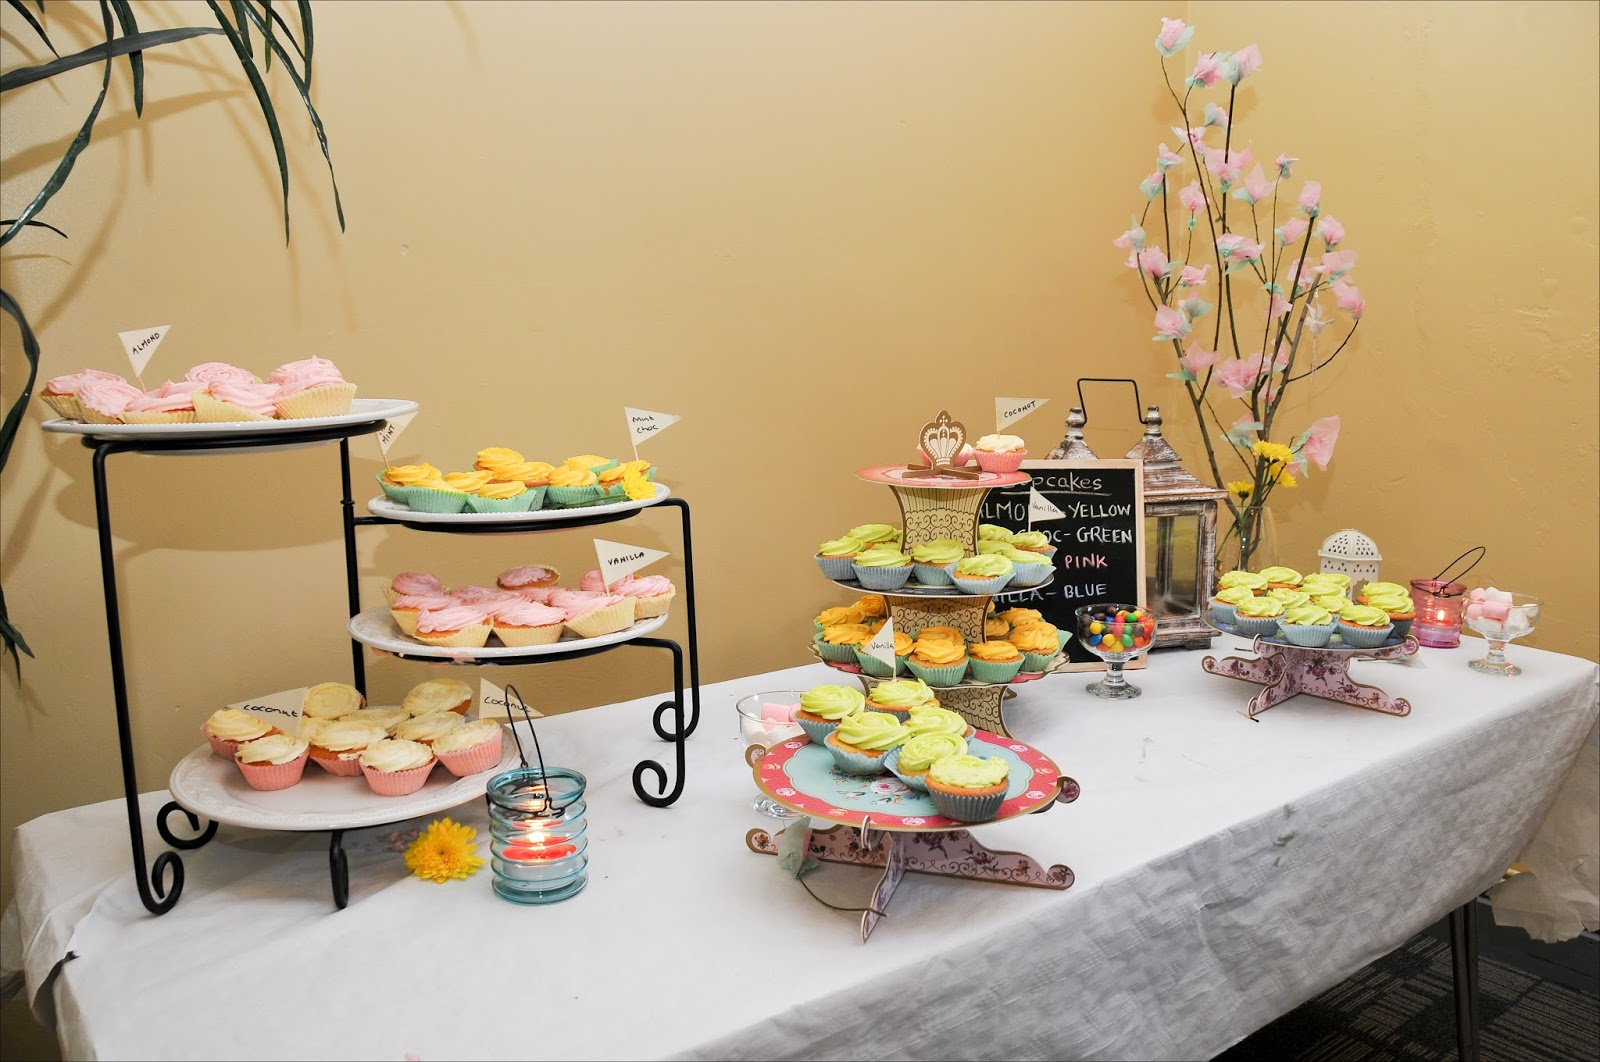 DIY WEDDING DESSERTS TABLE; CUPCAKE TABLE